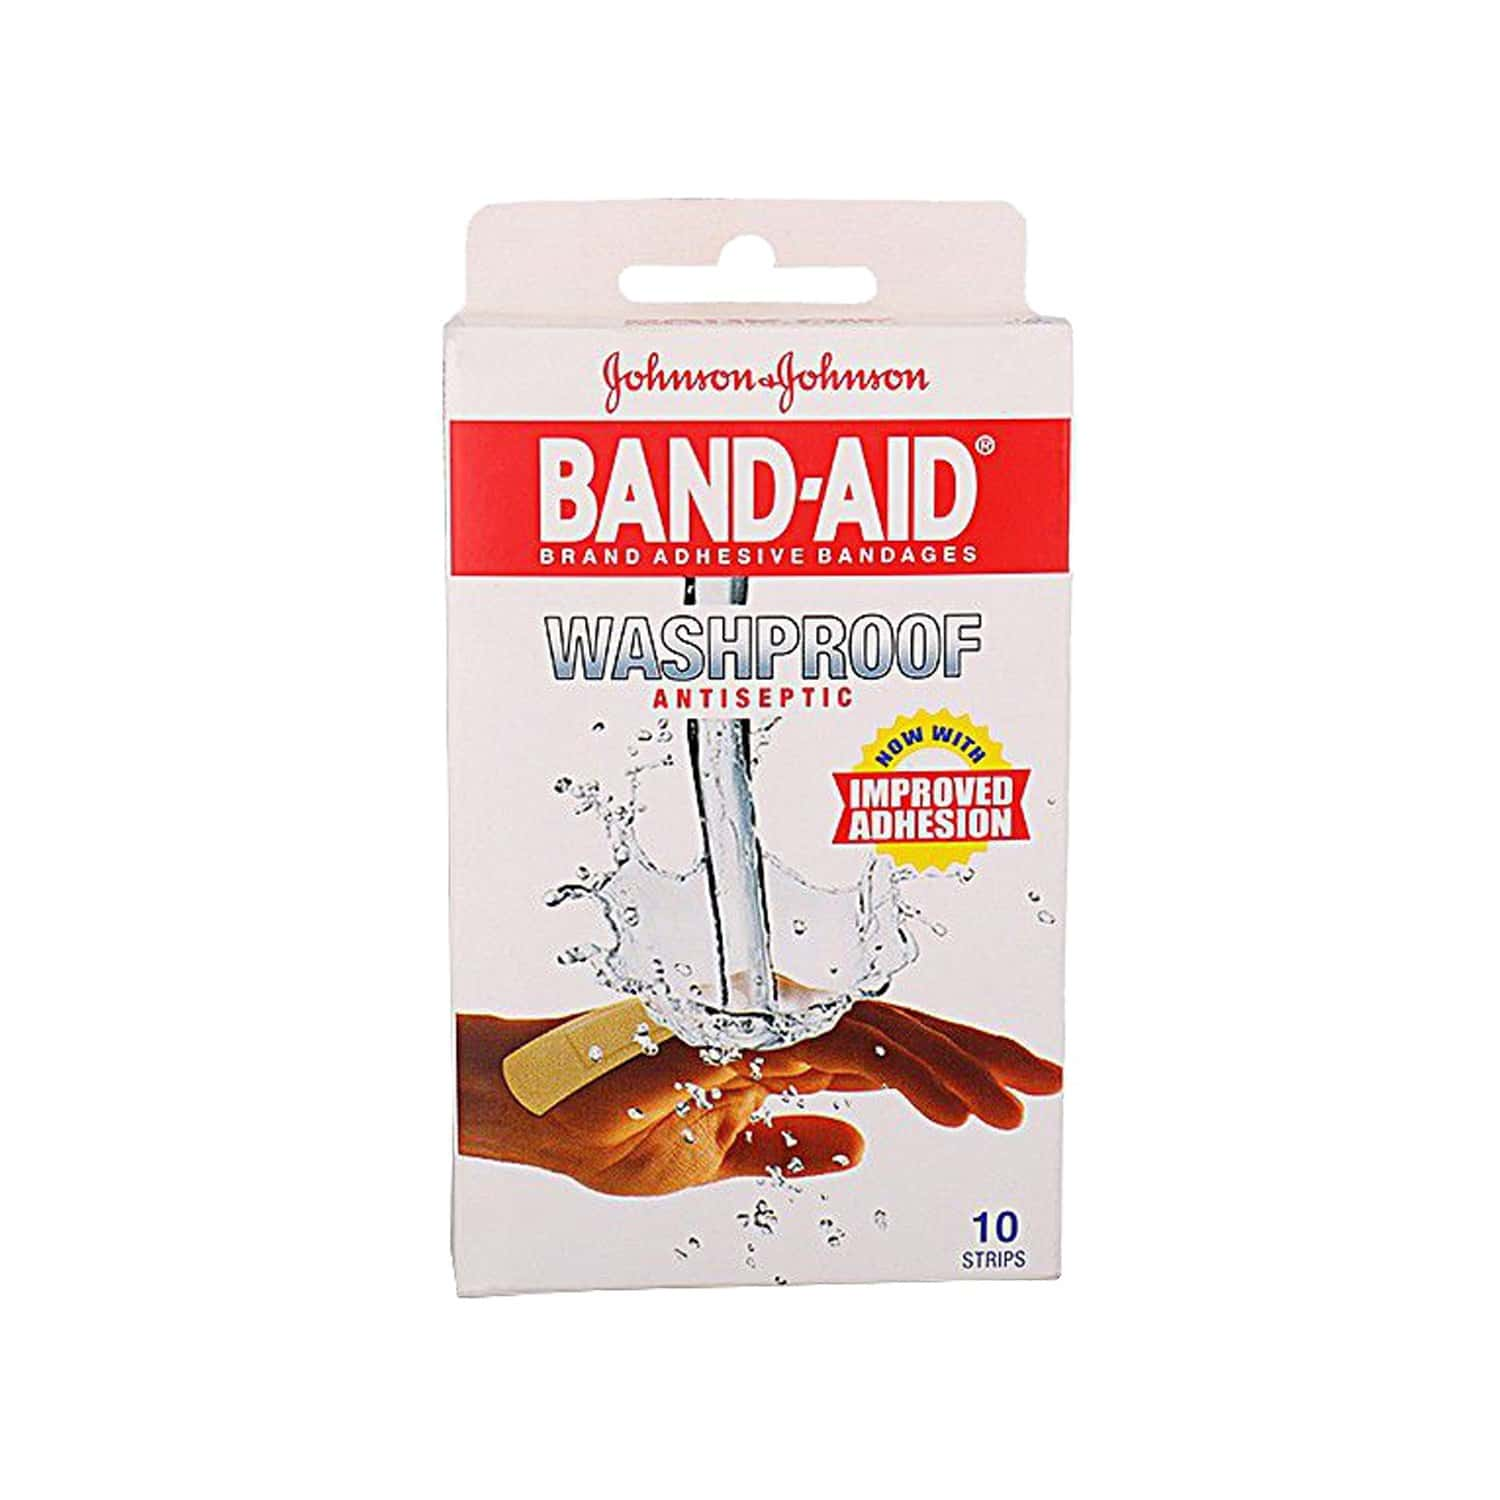 Band-aid Wash Proof 10 Strips, Get 2 Strips Free